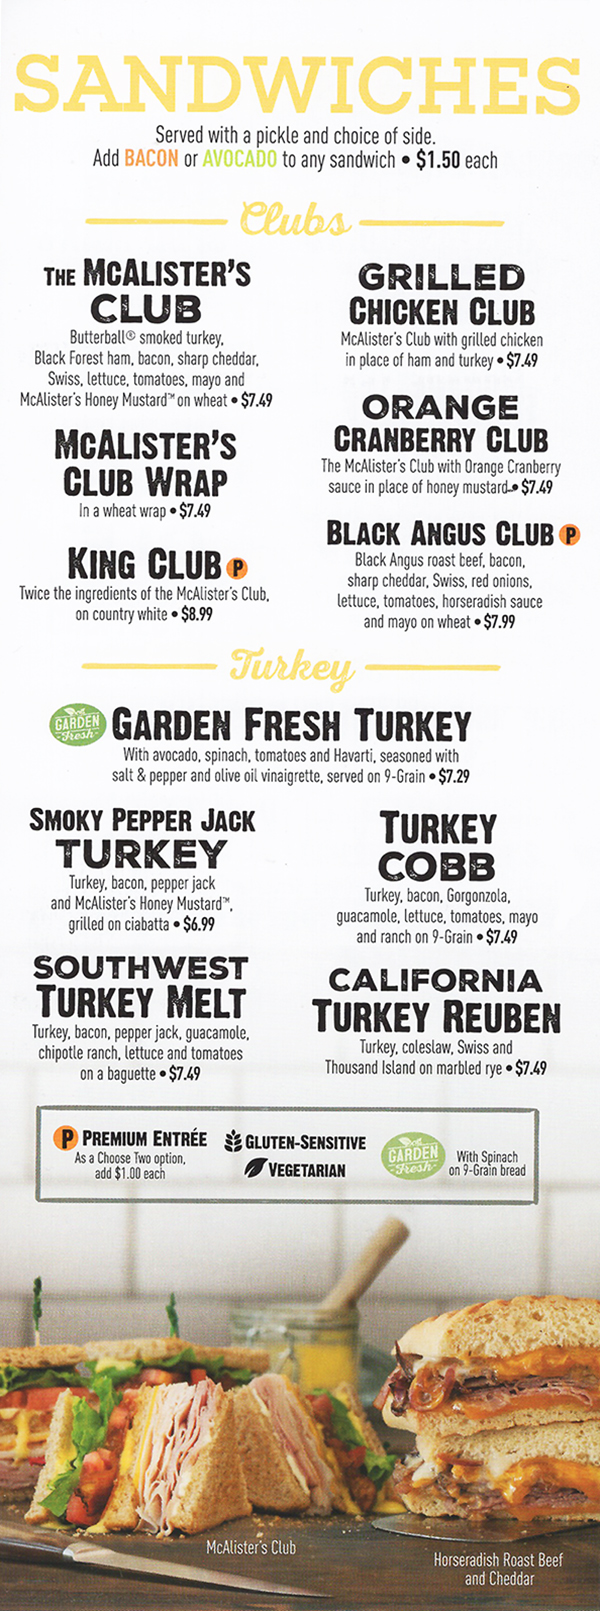 Lucrative image pertaining to mcalisters deli printable menu